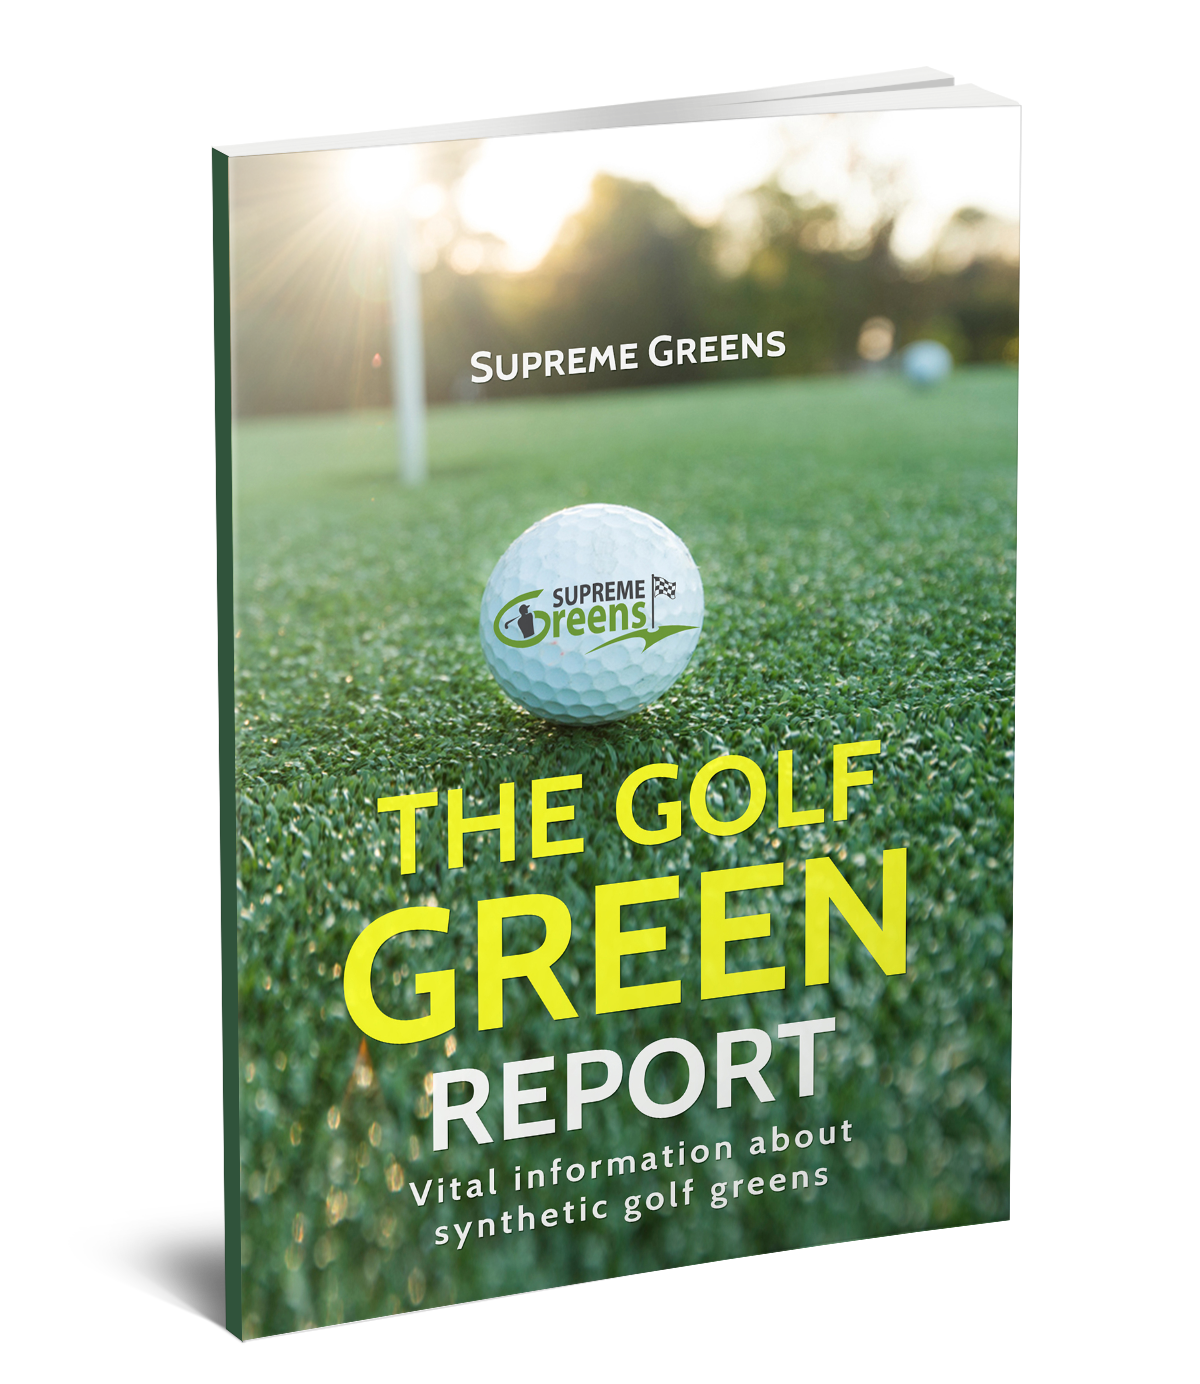 [Guide] How to build a synthetic golf green